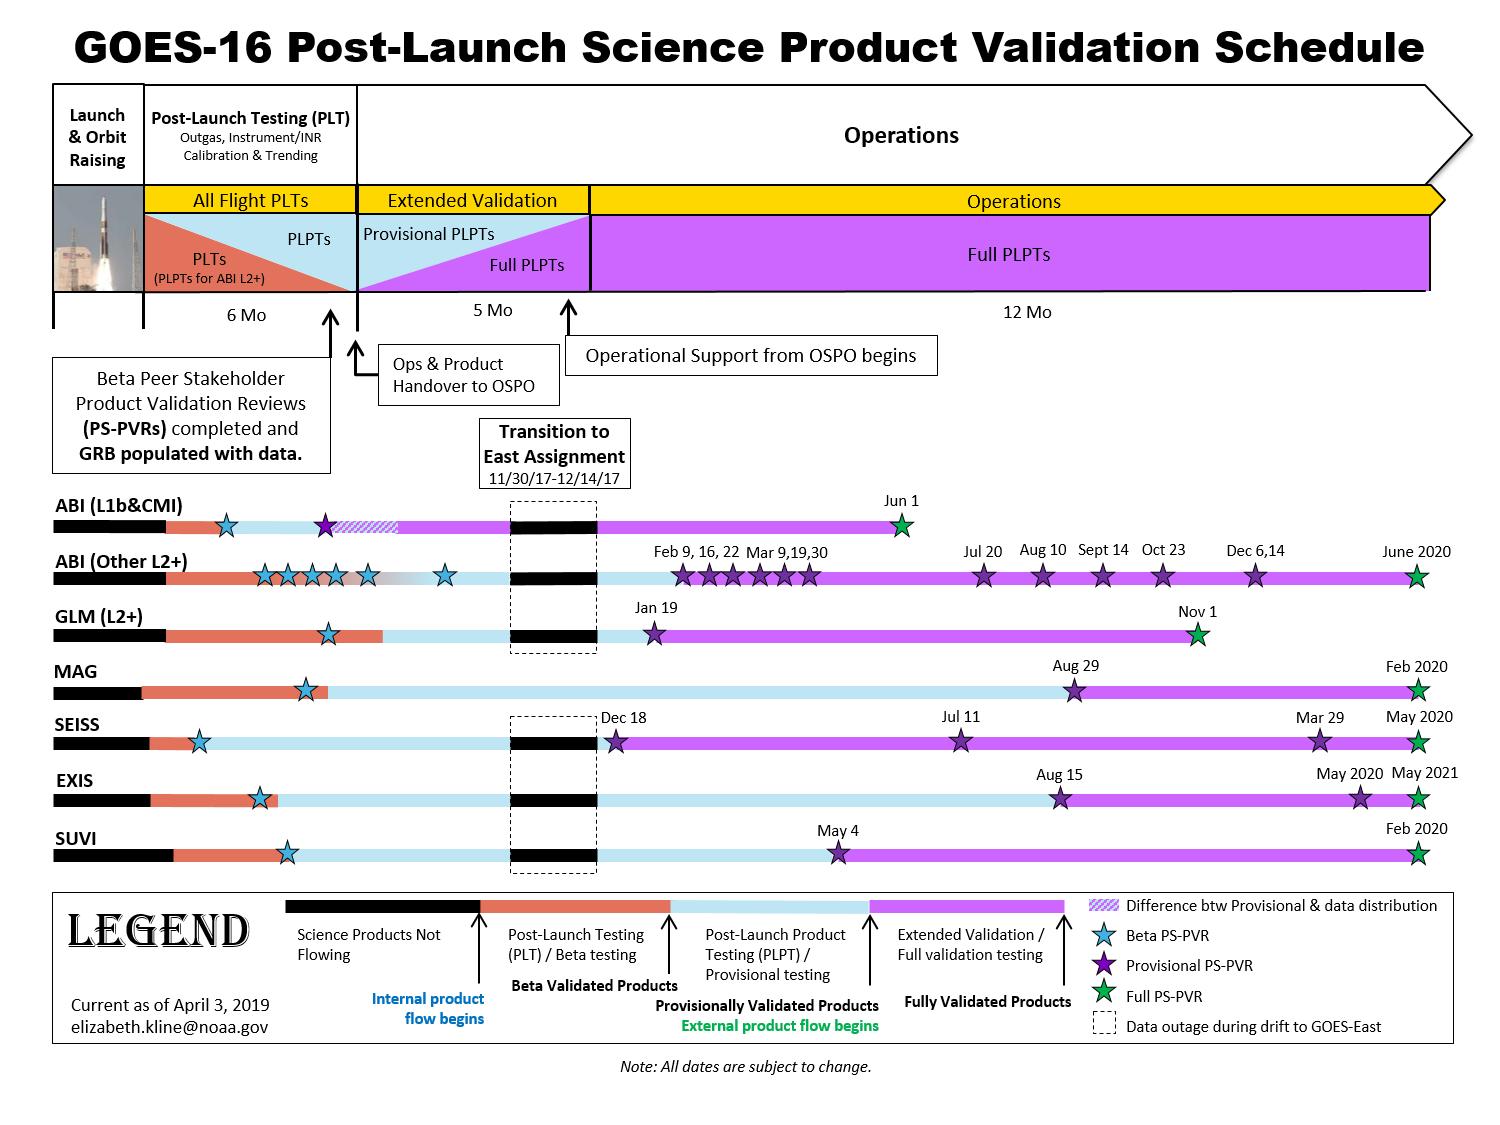 GOES-16 Science Product Validation Schedule as of April 3, 2019